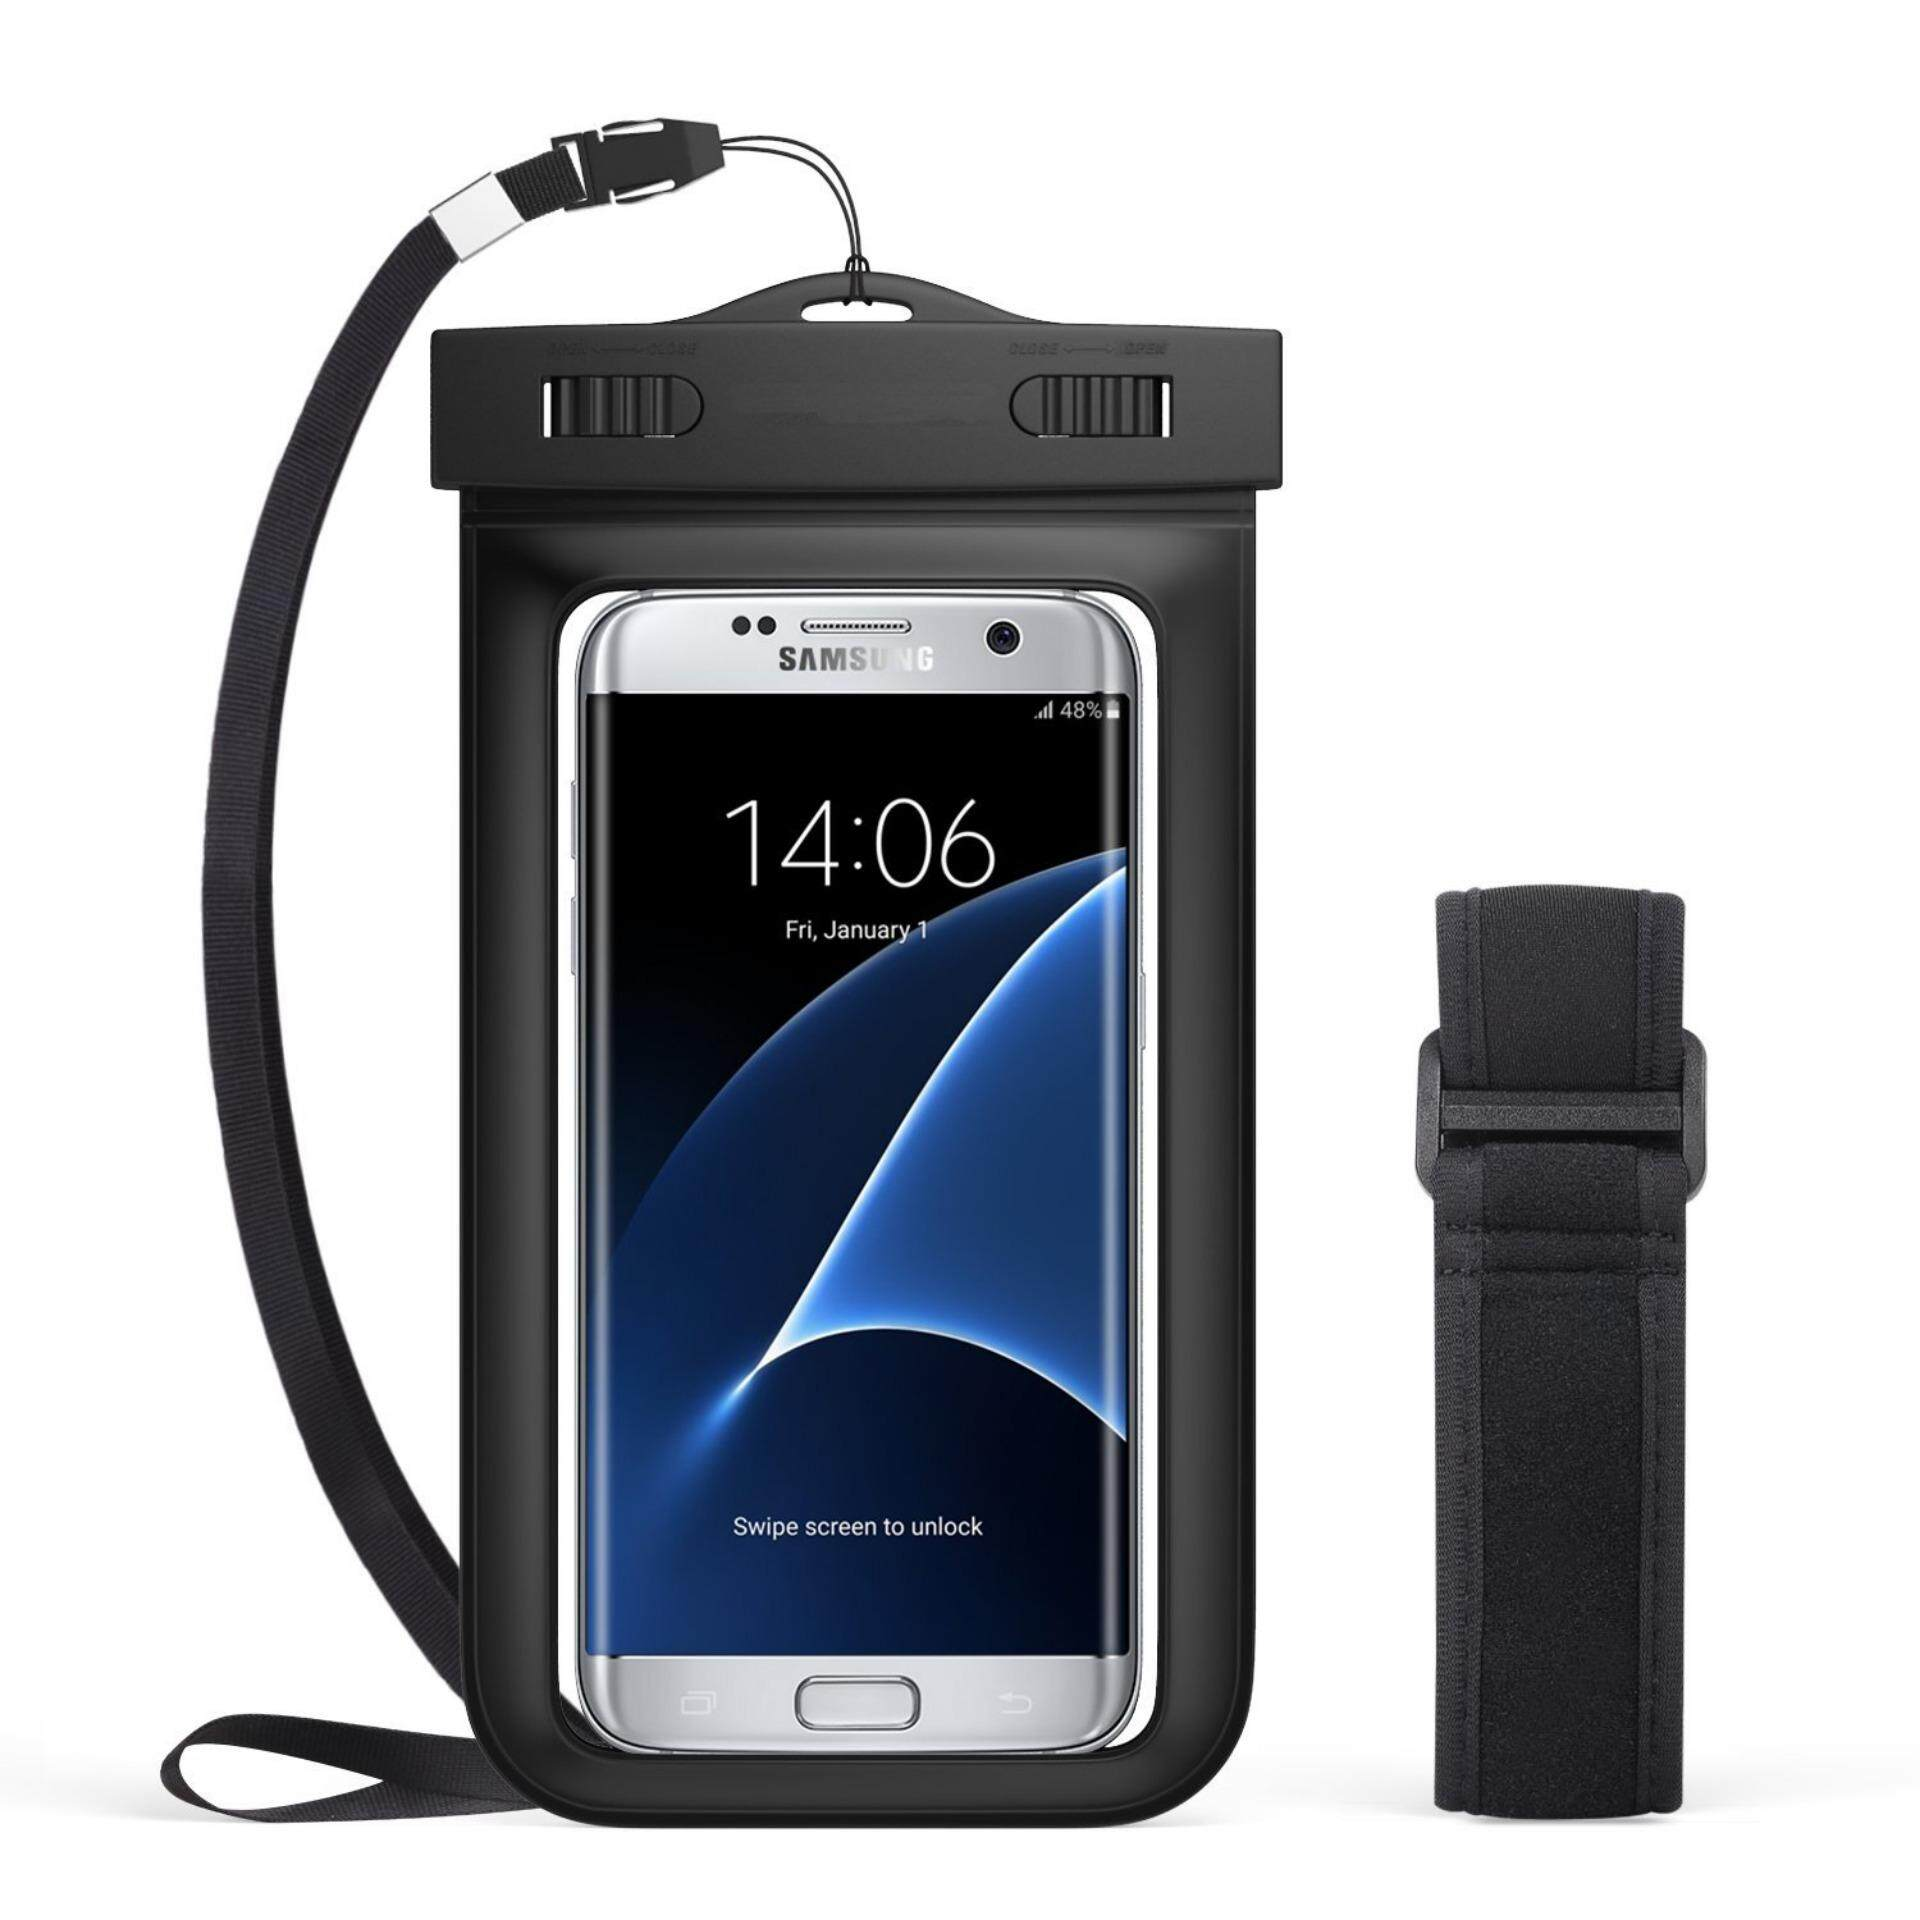 ... Cellphone Dry Bag with Armband Neck Strap for iPhone 7, 7 Plus, 6s, 6, 6s Plus, SE, 5s, Note5, S7 Edge, Xiaomi Note 4 ,Huawei P9,VIVO V5,OPPO F1S, ...